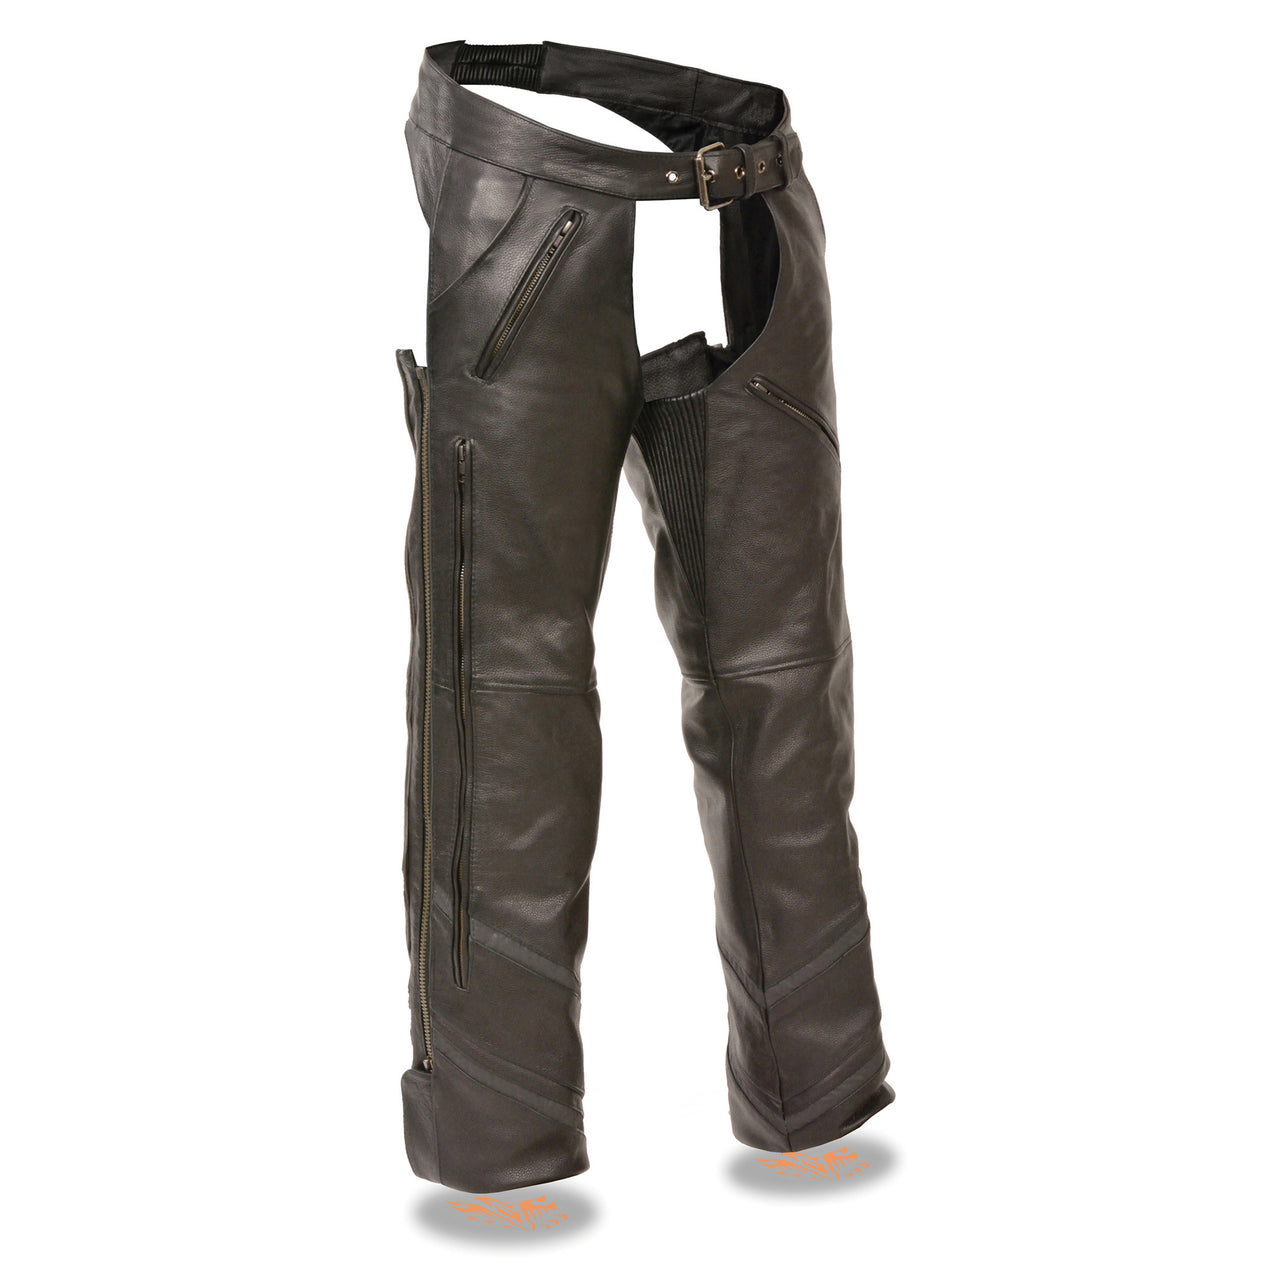 Men's Vented Chap w/ Reflective Piping - HighwayLeather